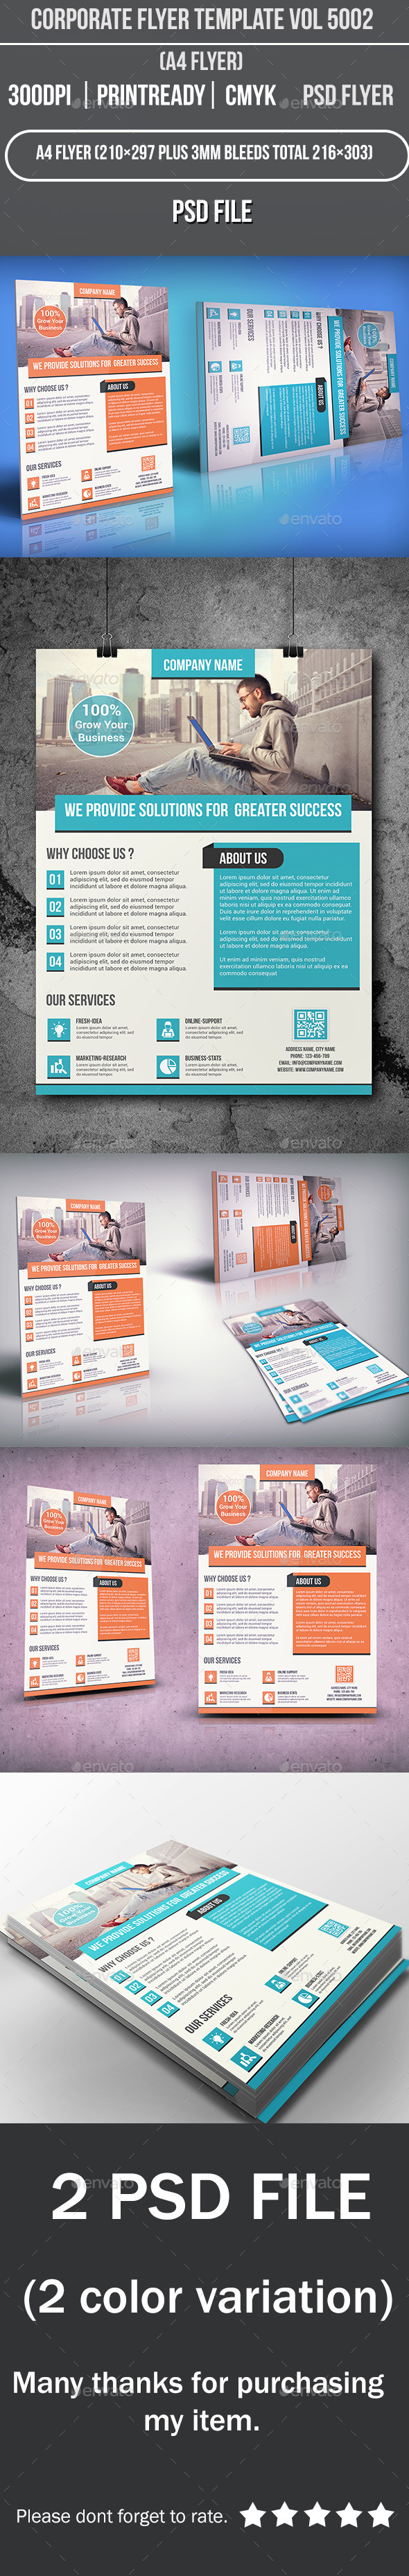 Corporate Flyer Template Vol 5002